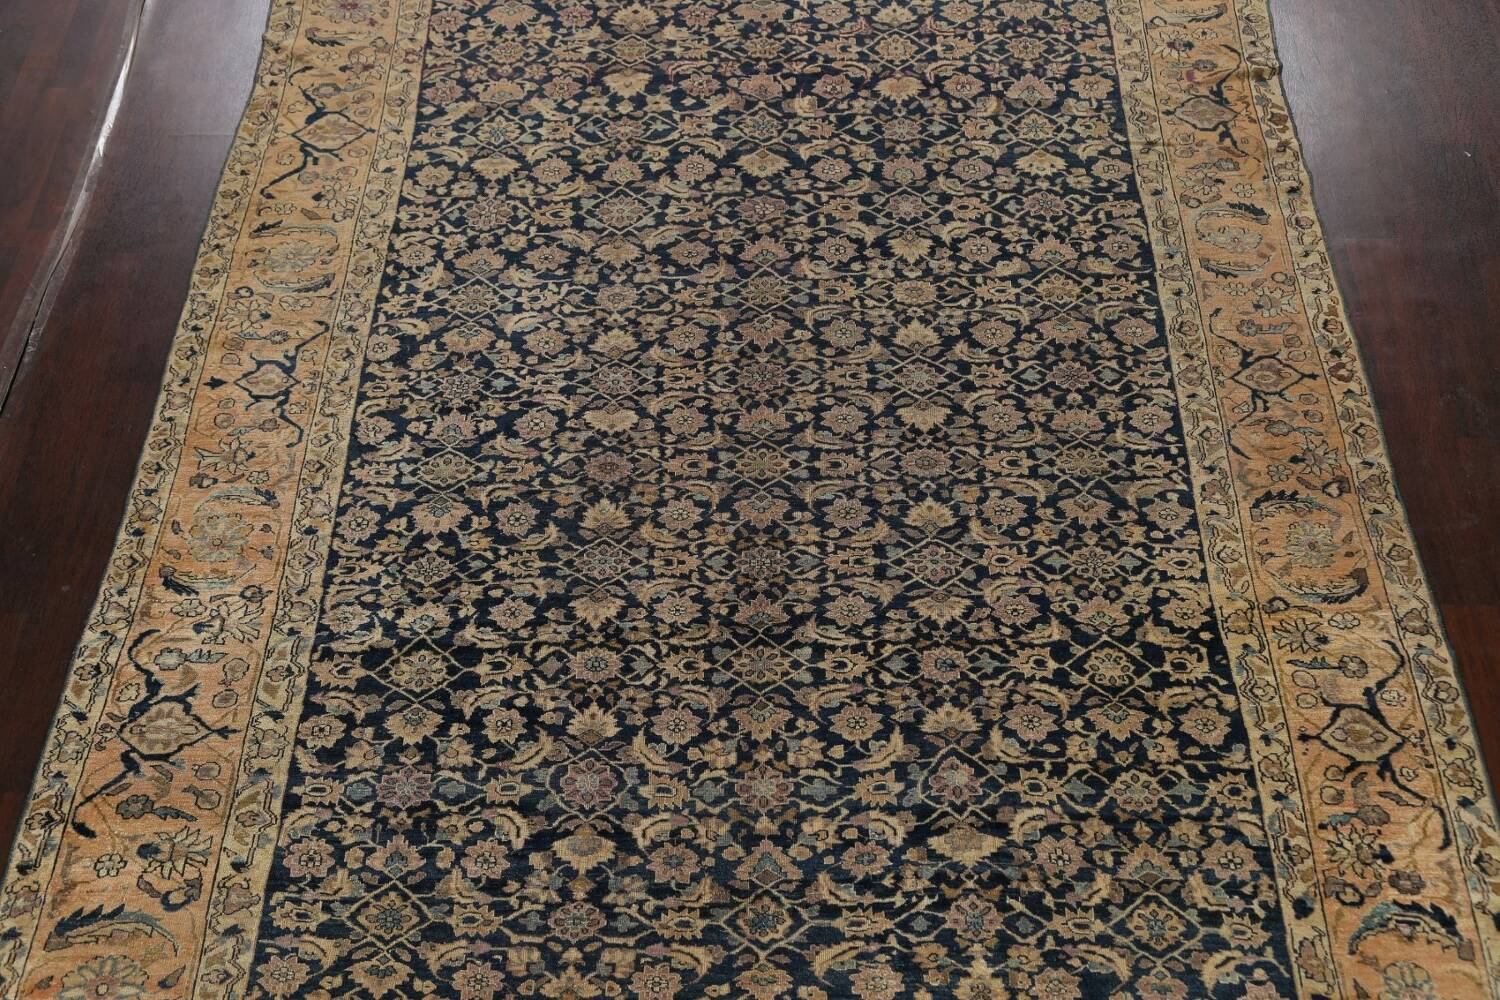 Pre-1900 Antique Vegetable Dye Malayer Persian Area Rug 9x12 image 3